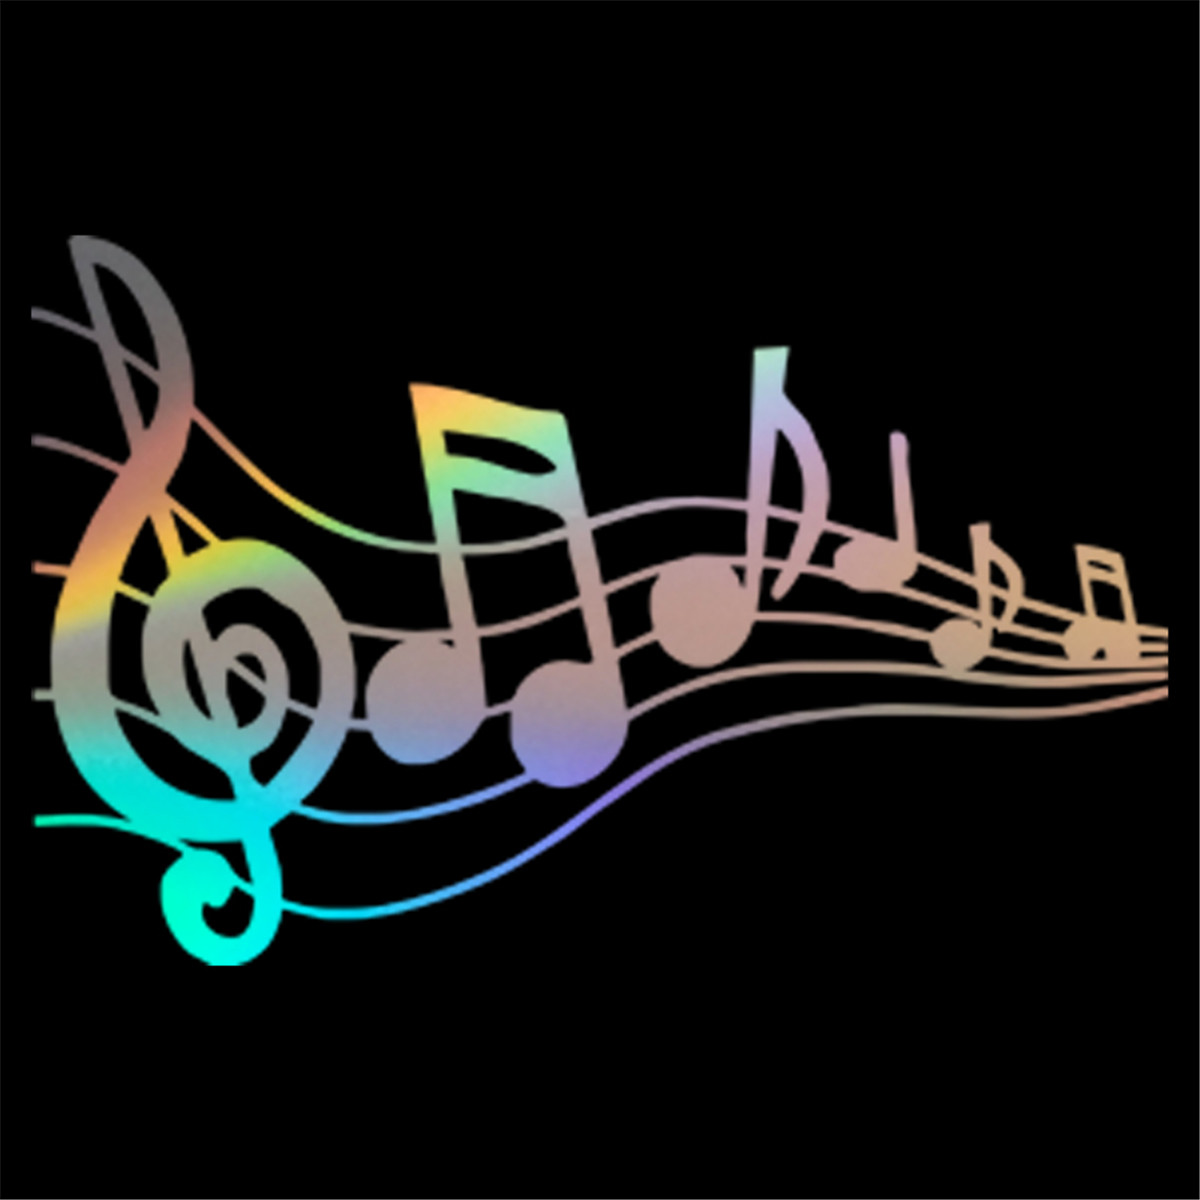 Musical Notes Decal Car Window Piano Guitar Wall Laptop Vinyl Sticker Decor Gift